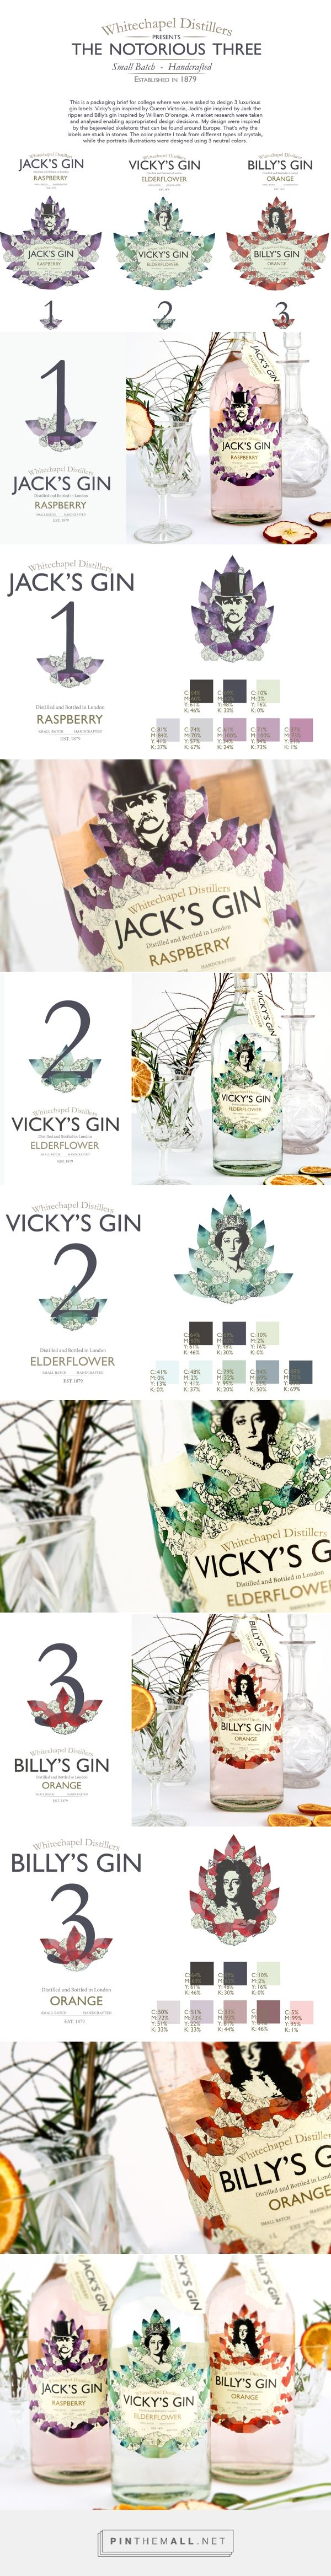 The Notorious Three/Gin Labels on Behance by Mariana de Moura curated by Packaging Diva PD. Great gin college packaging project. Vicky's gin inspired by Queen Victoria, Jack's gin inspired by Jack the ripper and Billy's gin inspired by William D'orange